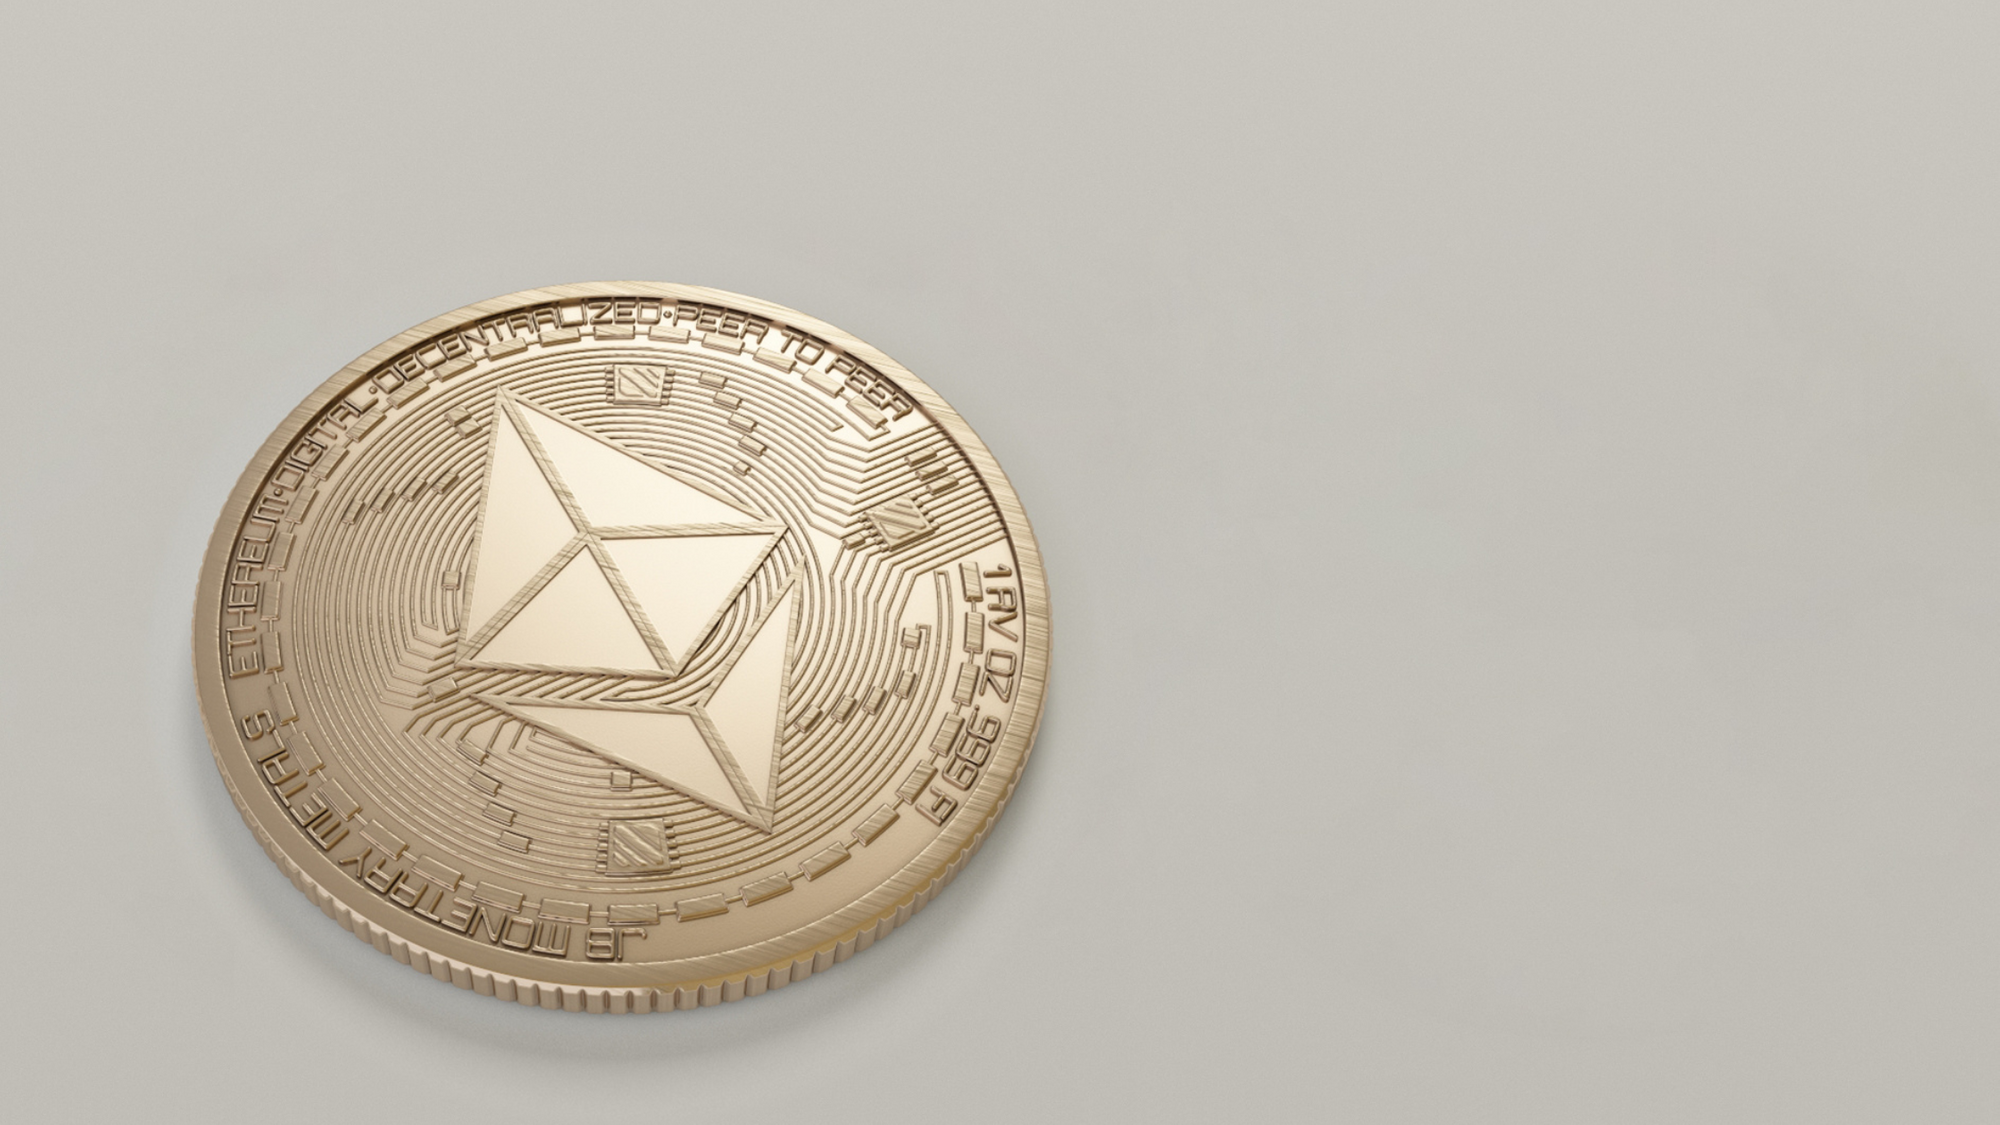 What exactly is an Ethereum token?